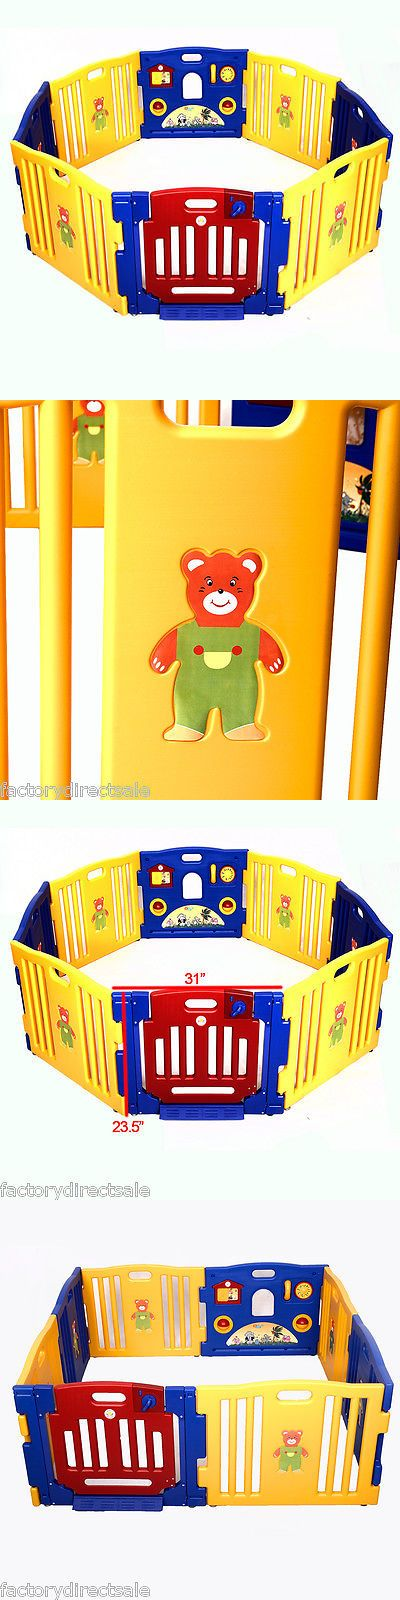 Baby Gear 100223: New Baby Playpen Kids 8 Panel Safety Play Center Yard Home Indoor Outdoor Pen -> BUY IT NOW ONLY: $78.52 on eBay!